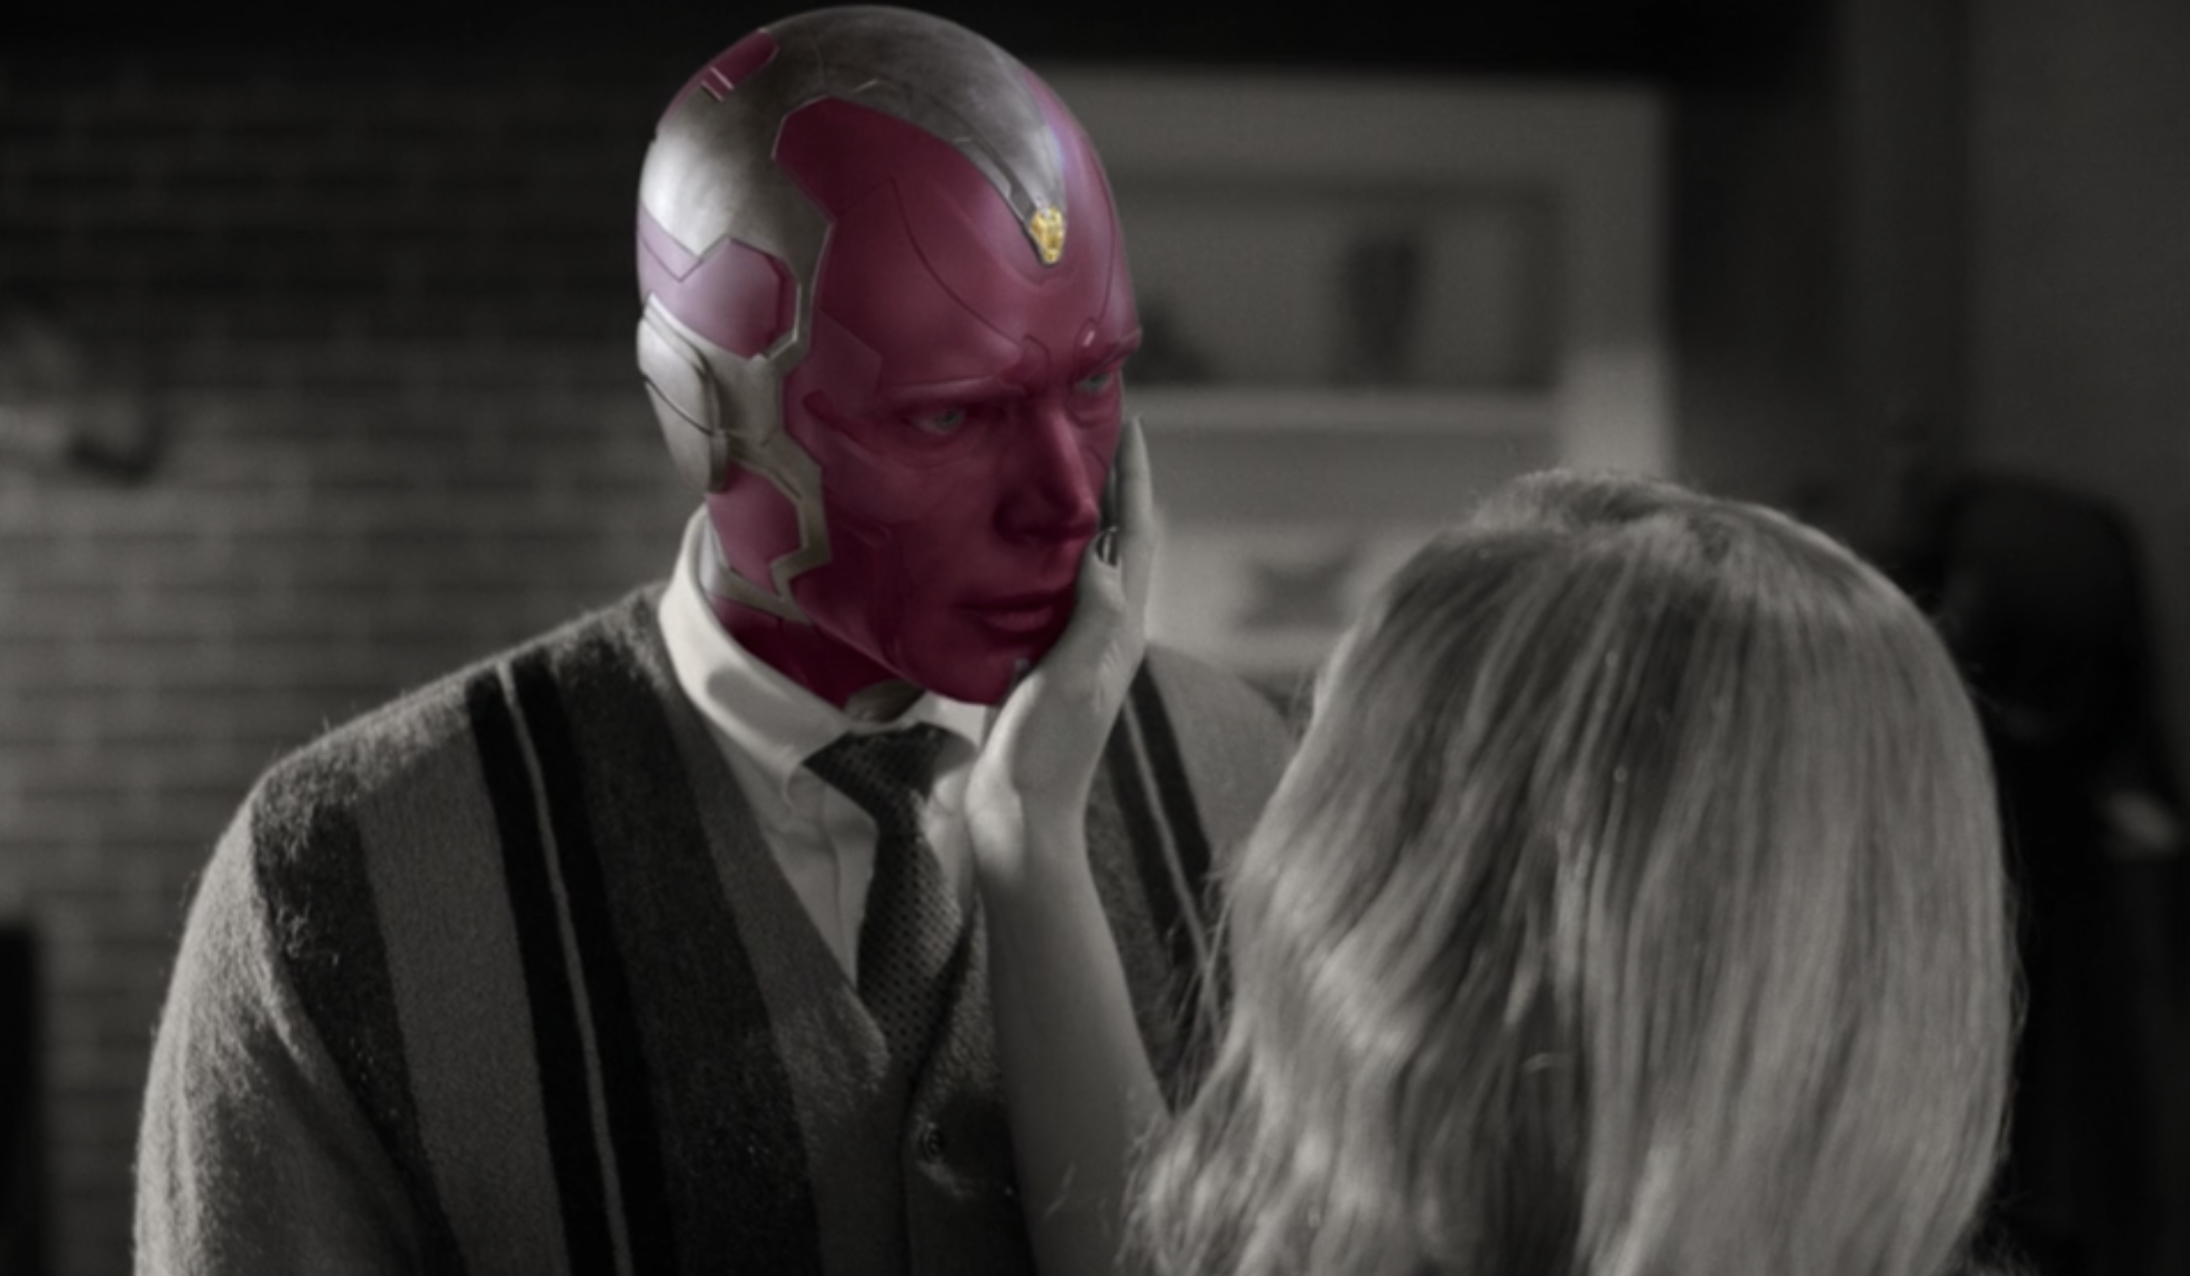 Vision's face being colorful and red again